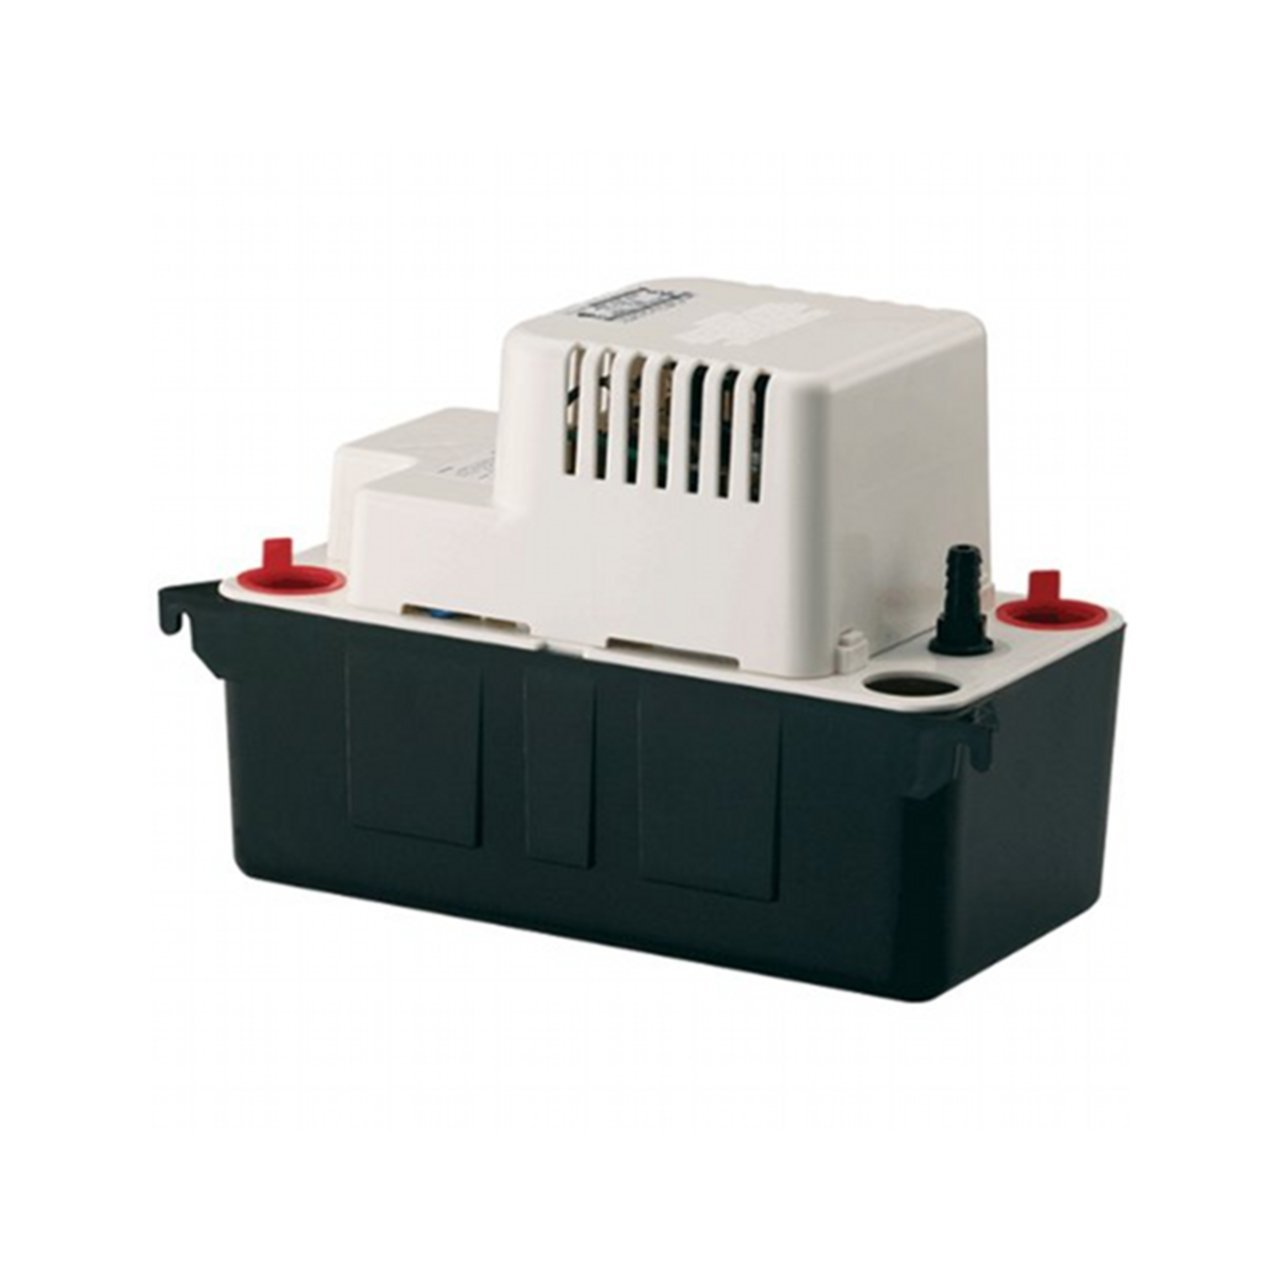 Little Giant 554425 VCMA-20ULS Condensate Removal 1/30 HP Pump with Safety Switch (Renewed) by LITTLE GIANT